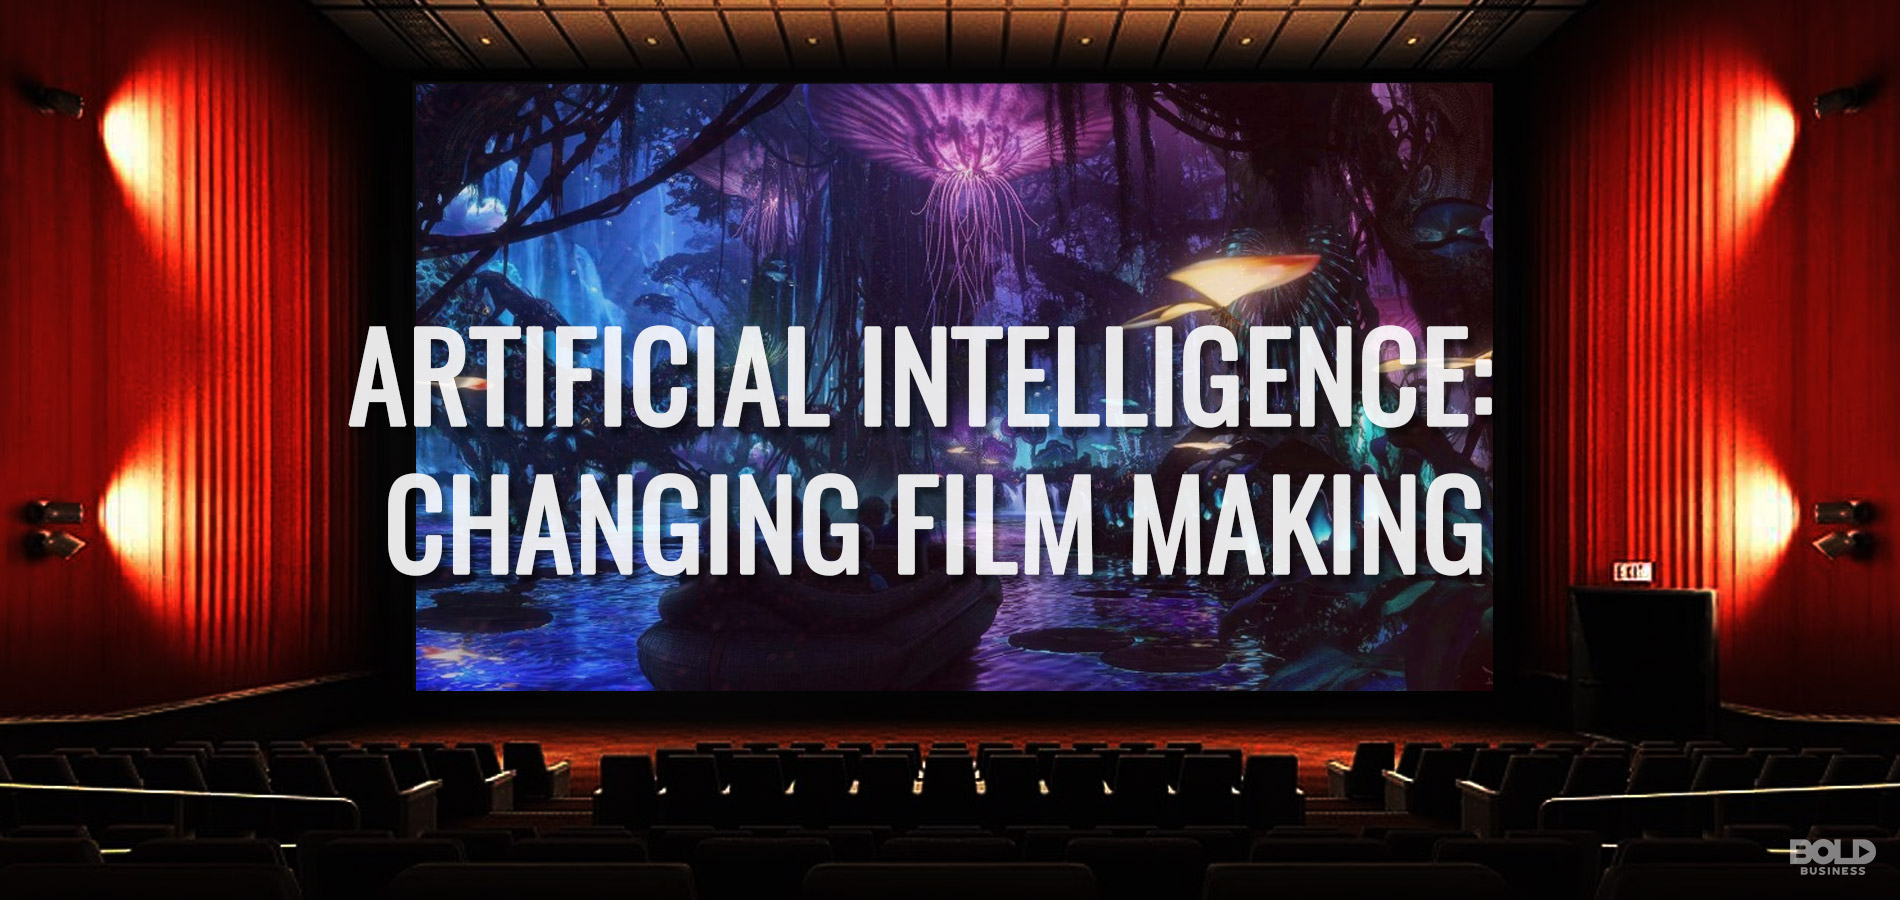 movie theater screen showing AI in Film Making